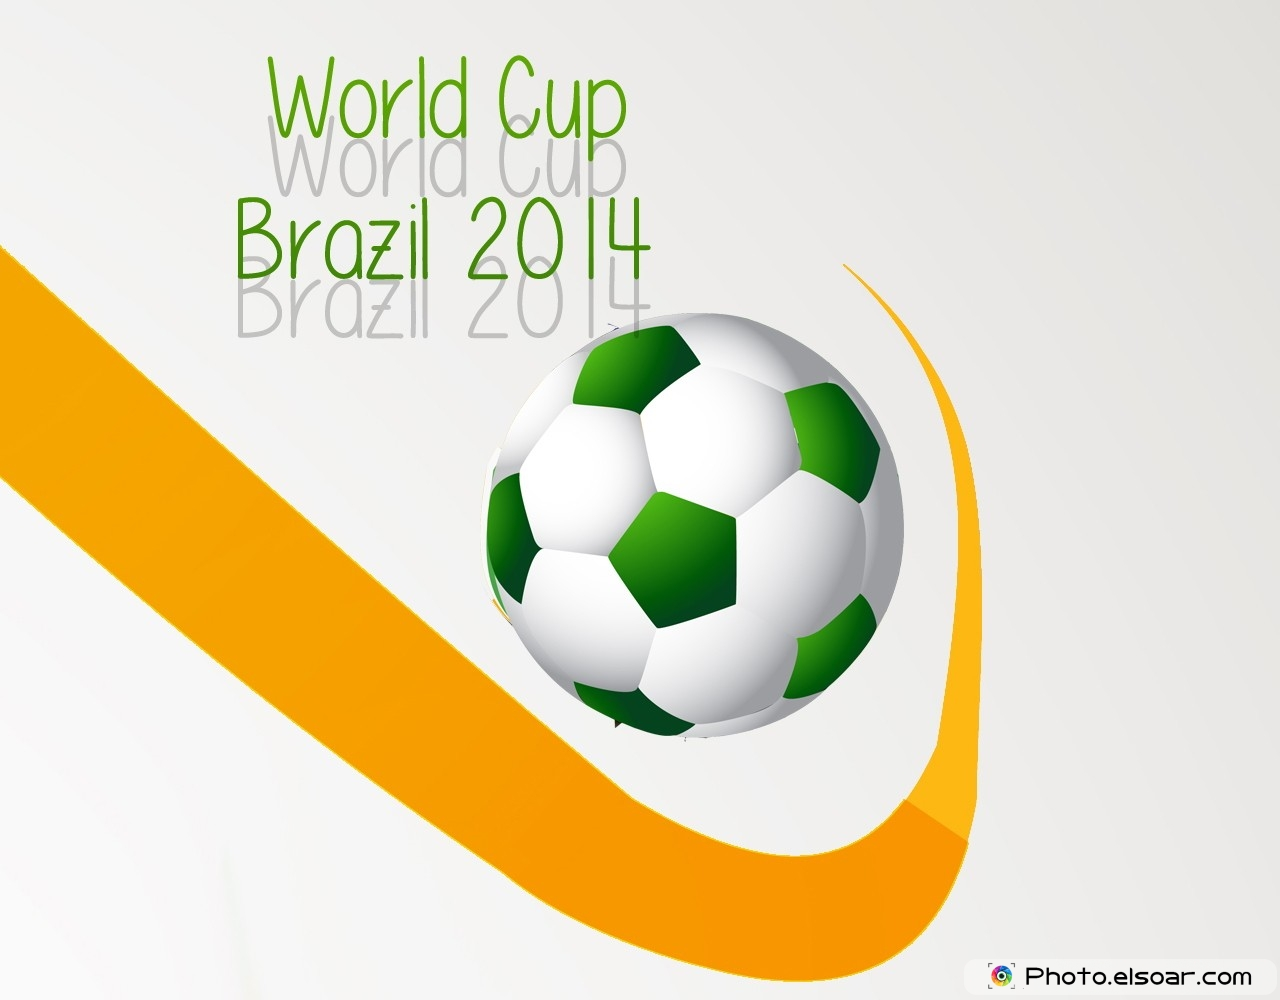 World Cup Brazil 2014 with Ball